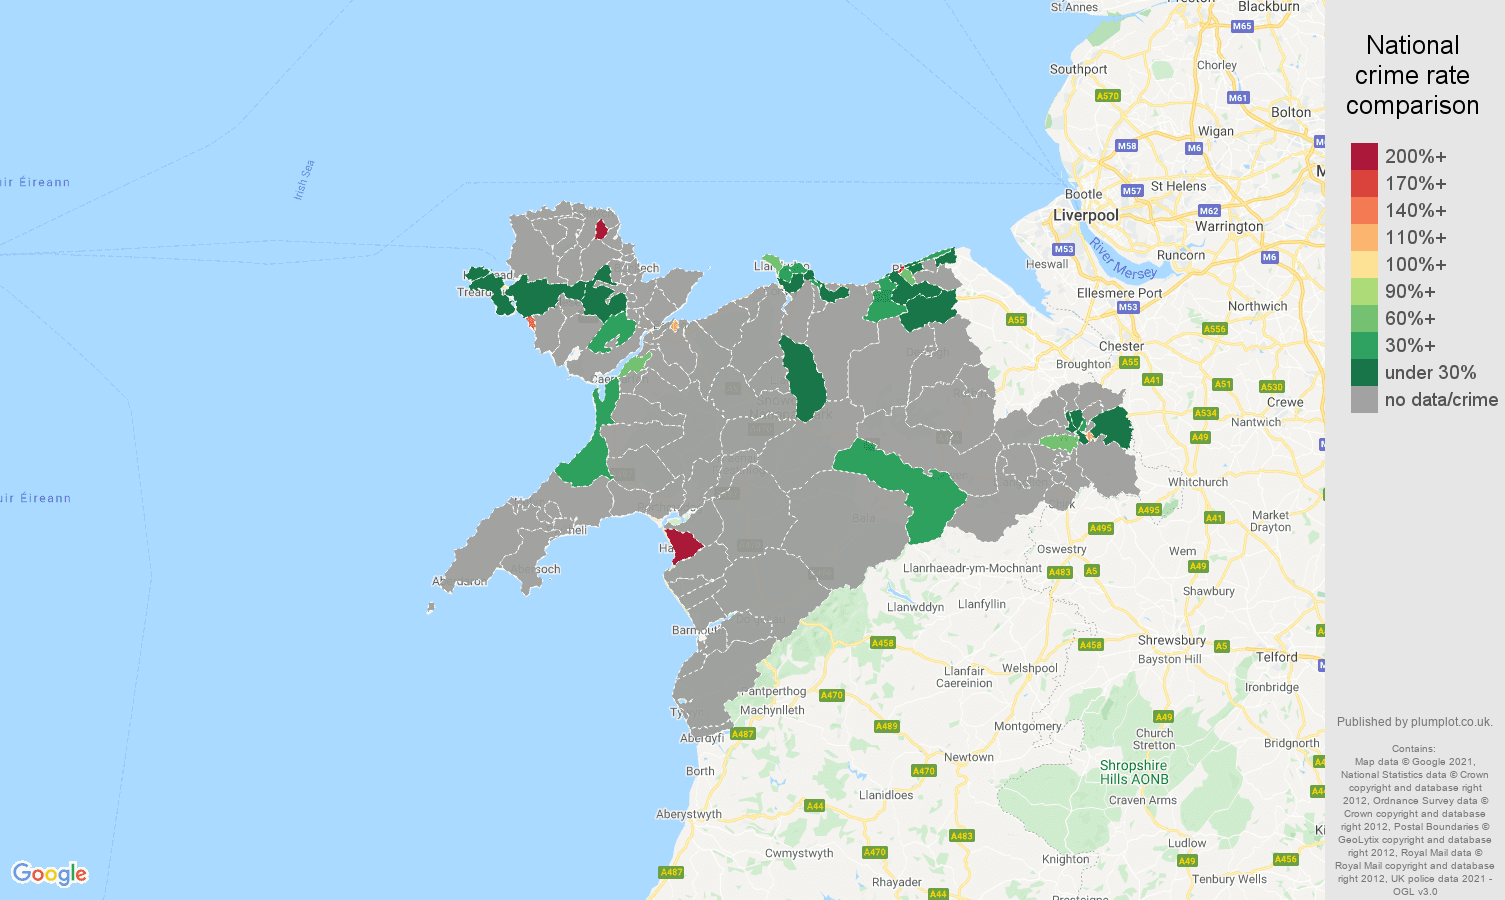 Llandudno theft from the person crime rate comparison map